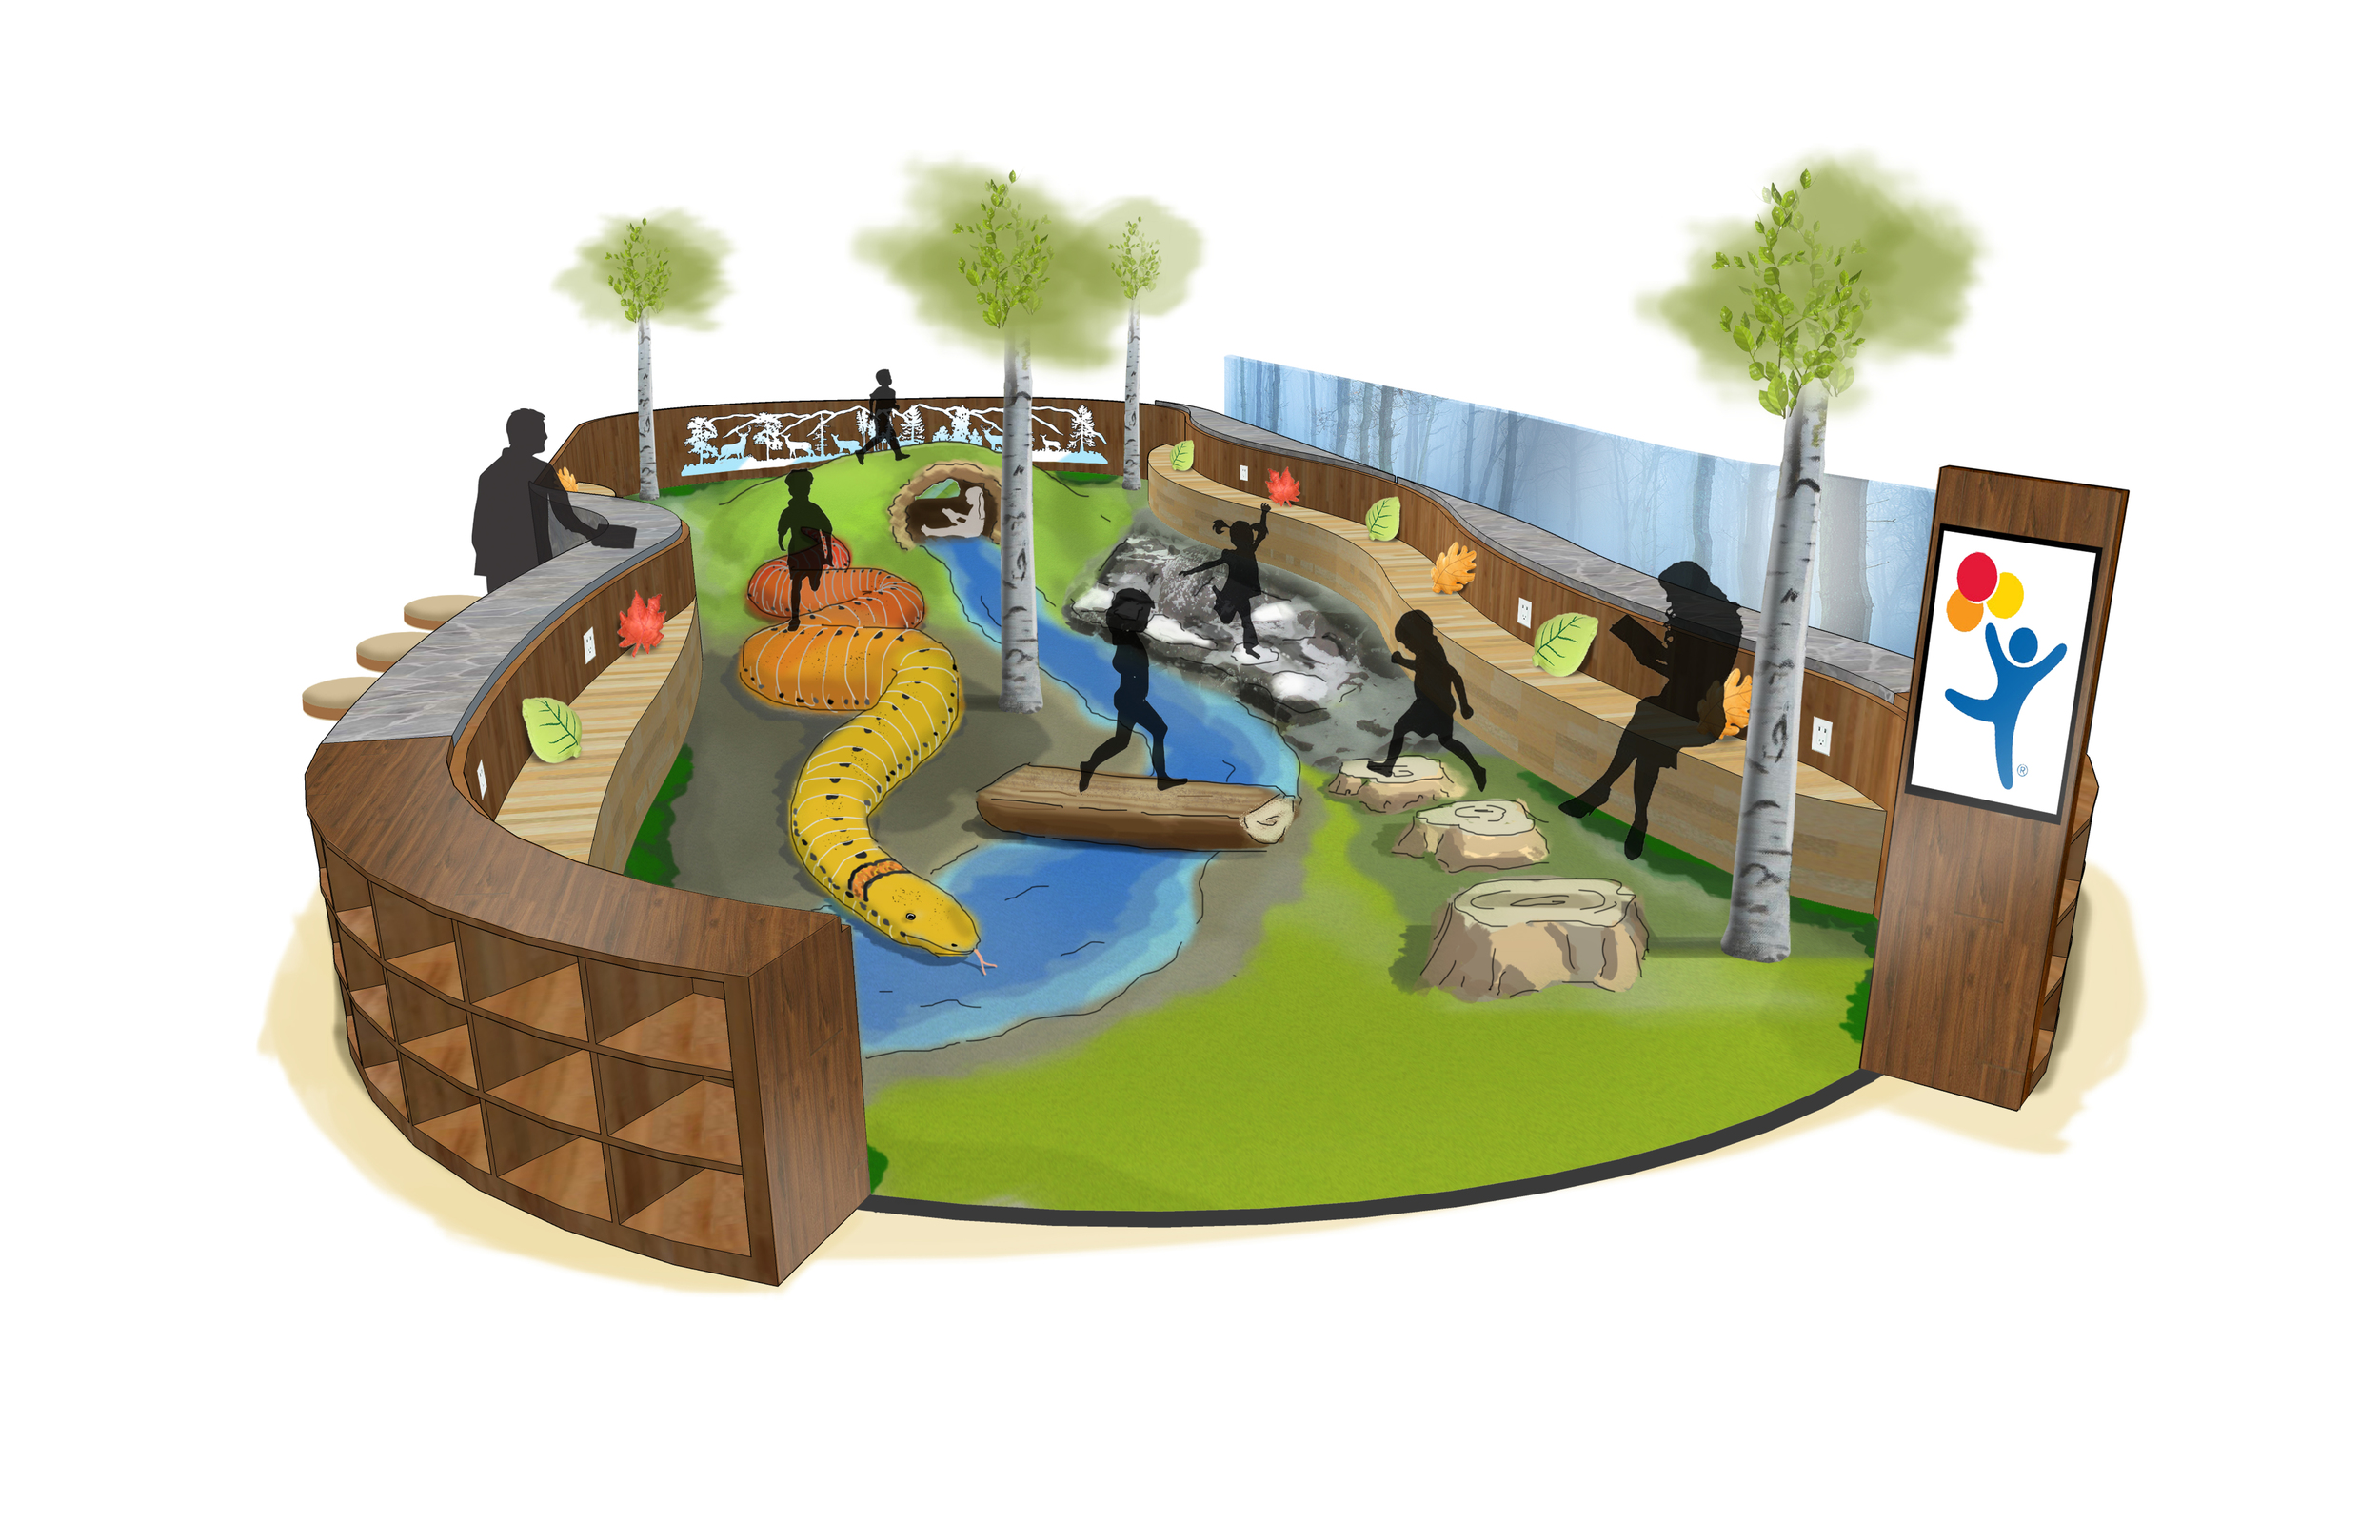 PLAYAREA copy.jpg